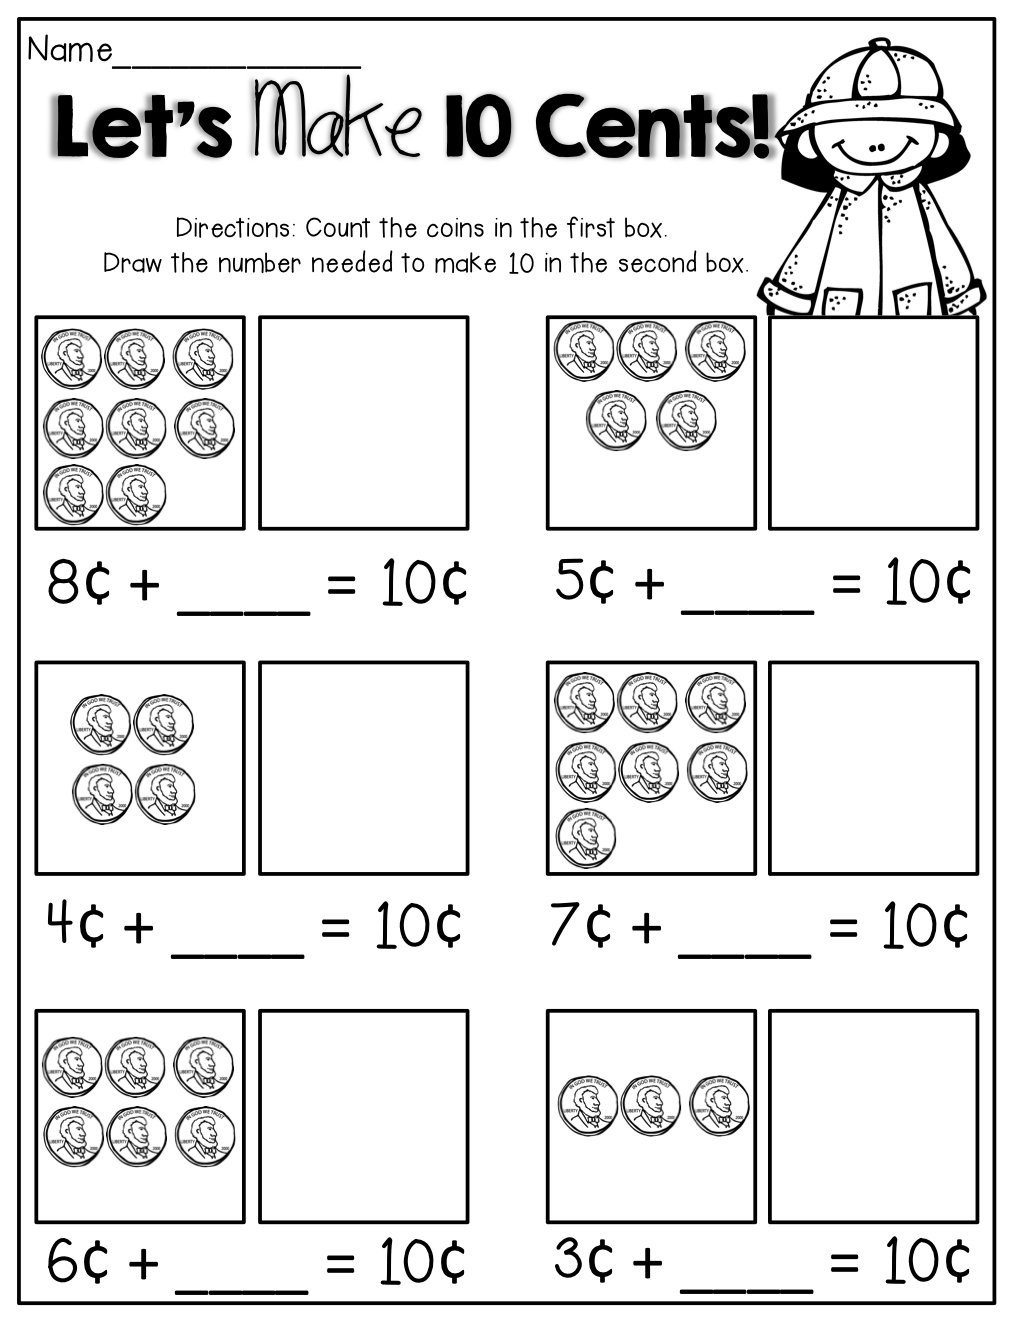 Let S Make 10 Cents Draw What Is Needed Personal Financial Literacy Spring Math Personal Financial Literacy Kindergarten [ 1325 x 1024 Pixel ]